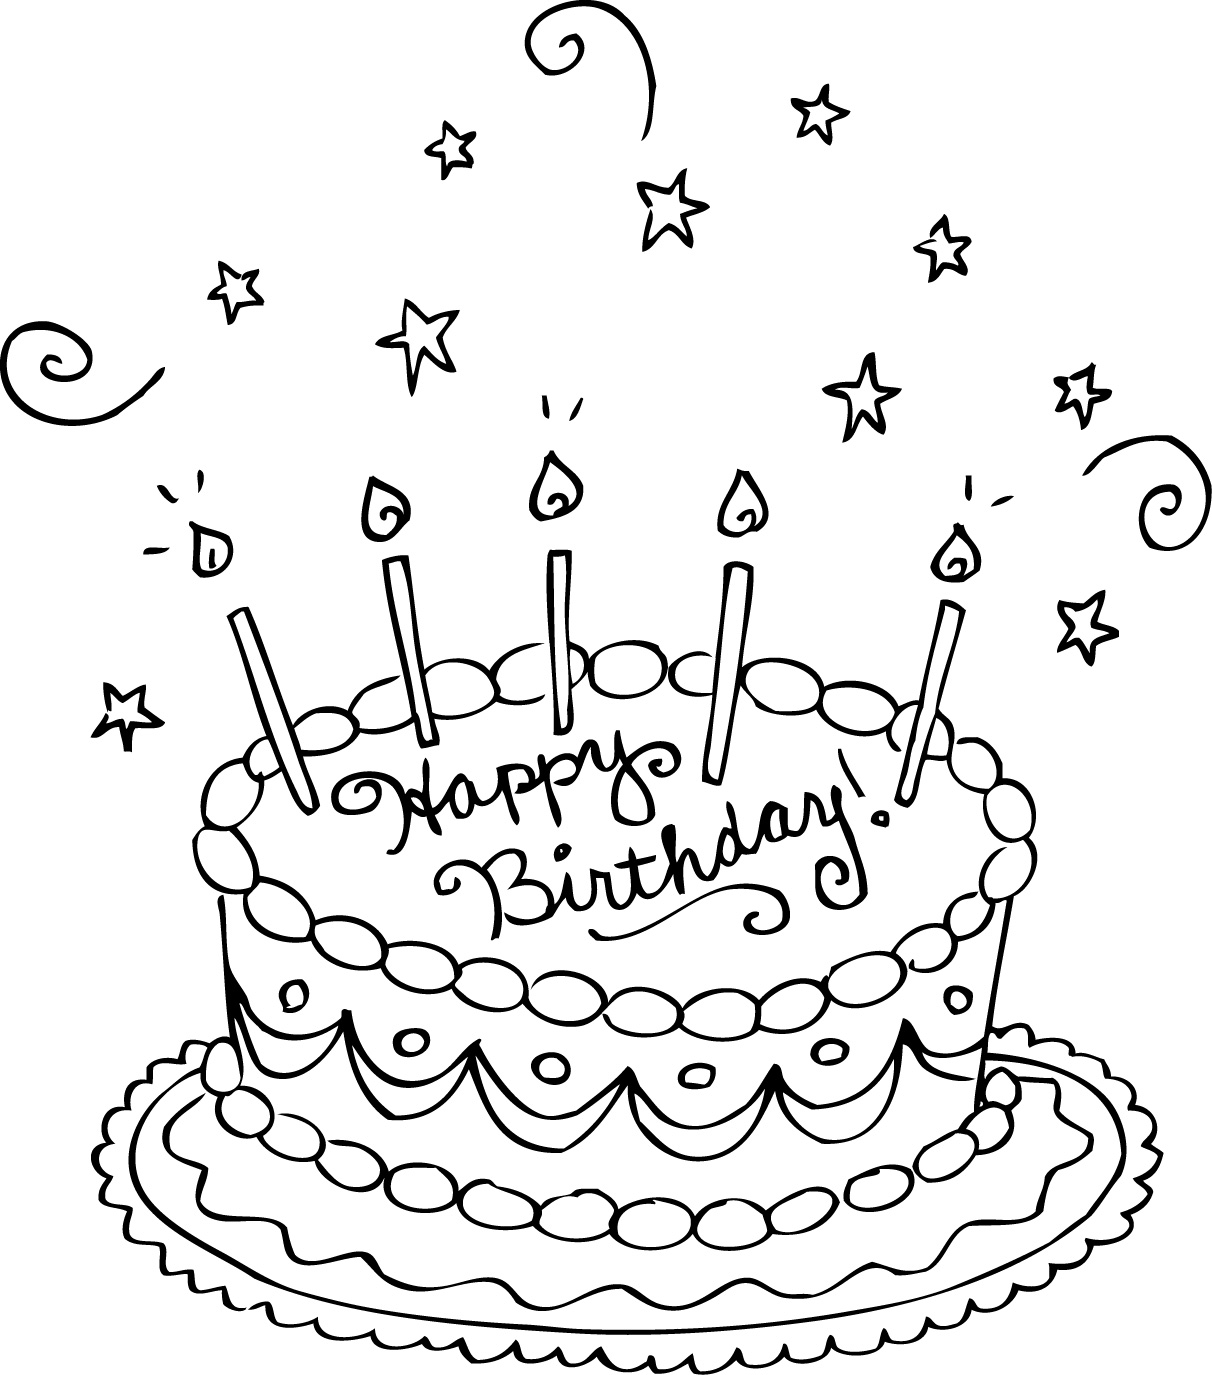 image about Birthday Cake Printable called Absolutely free Printable Birthday Cake Coloring Webpages For Little ones